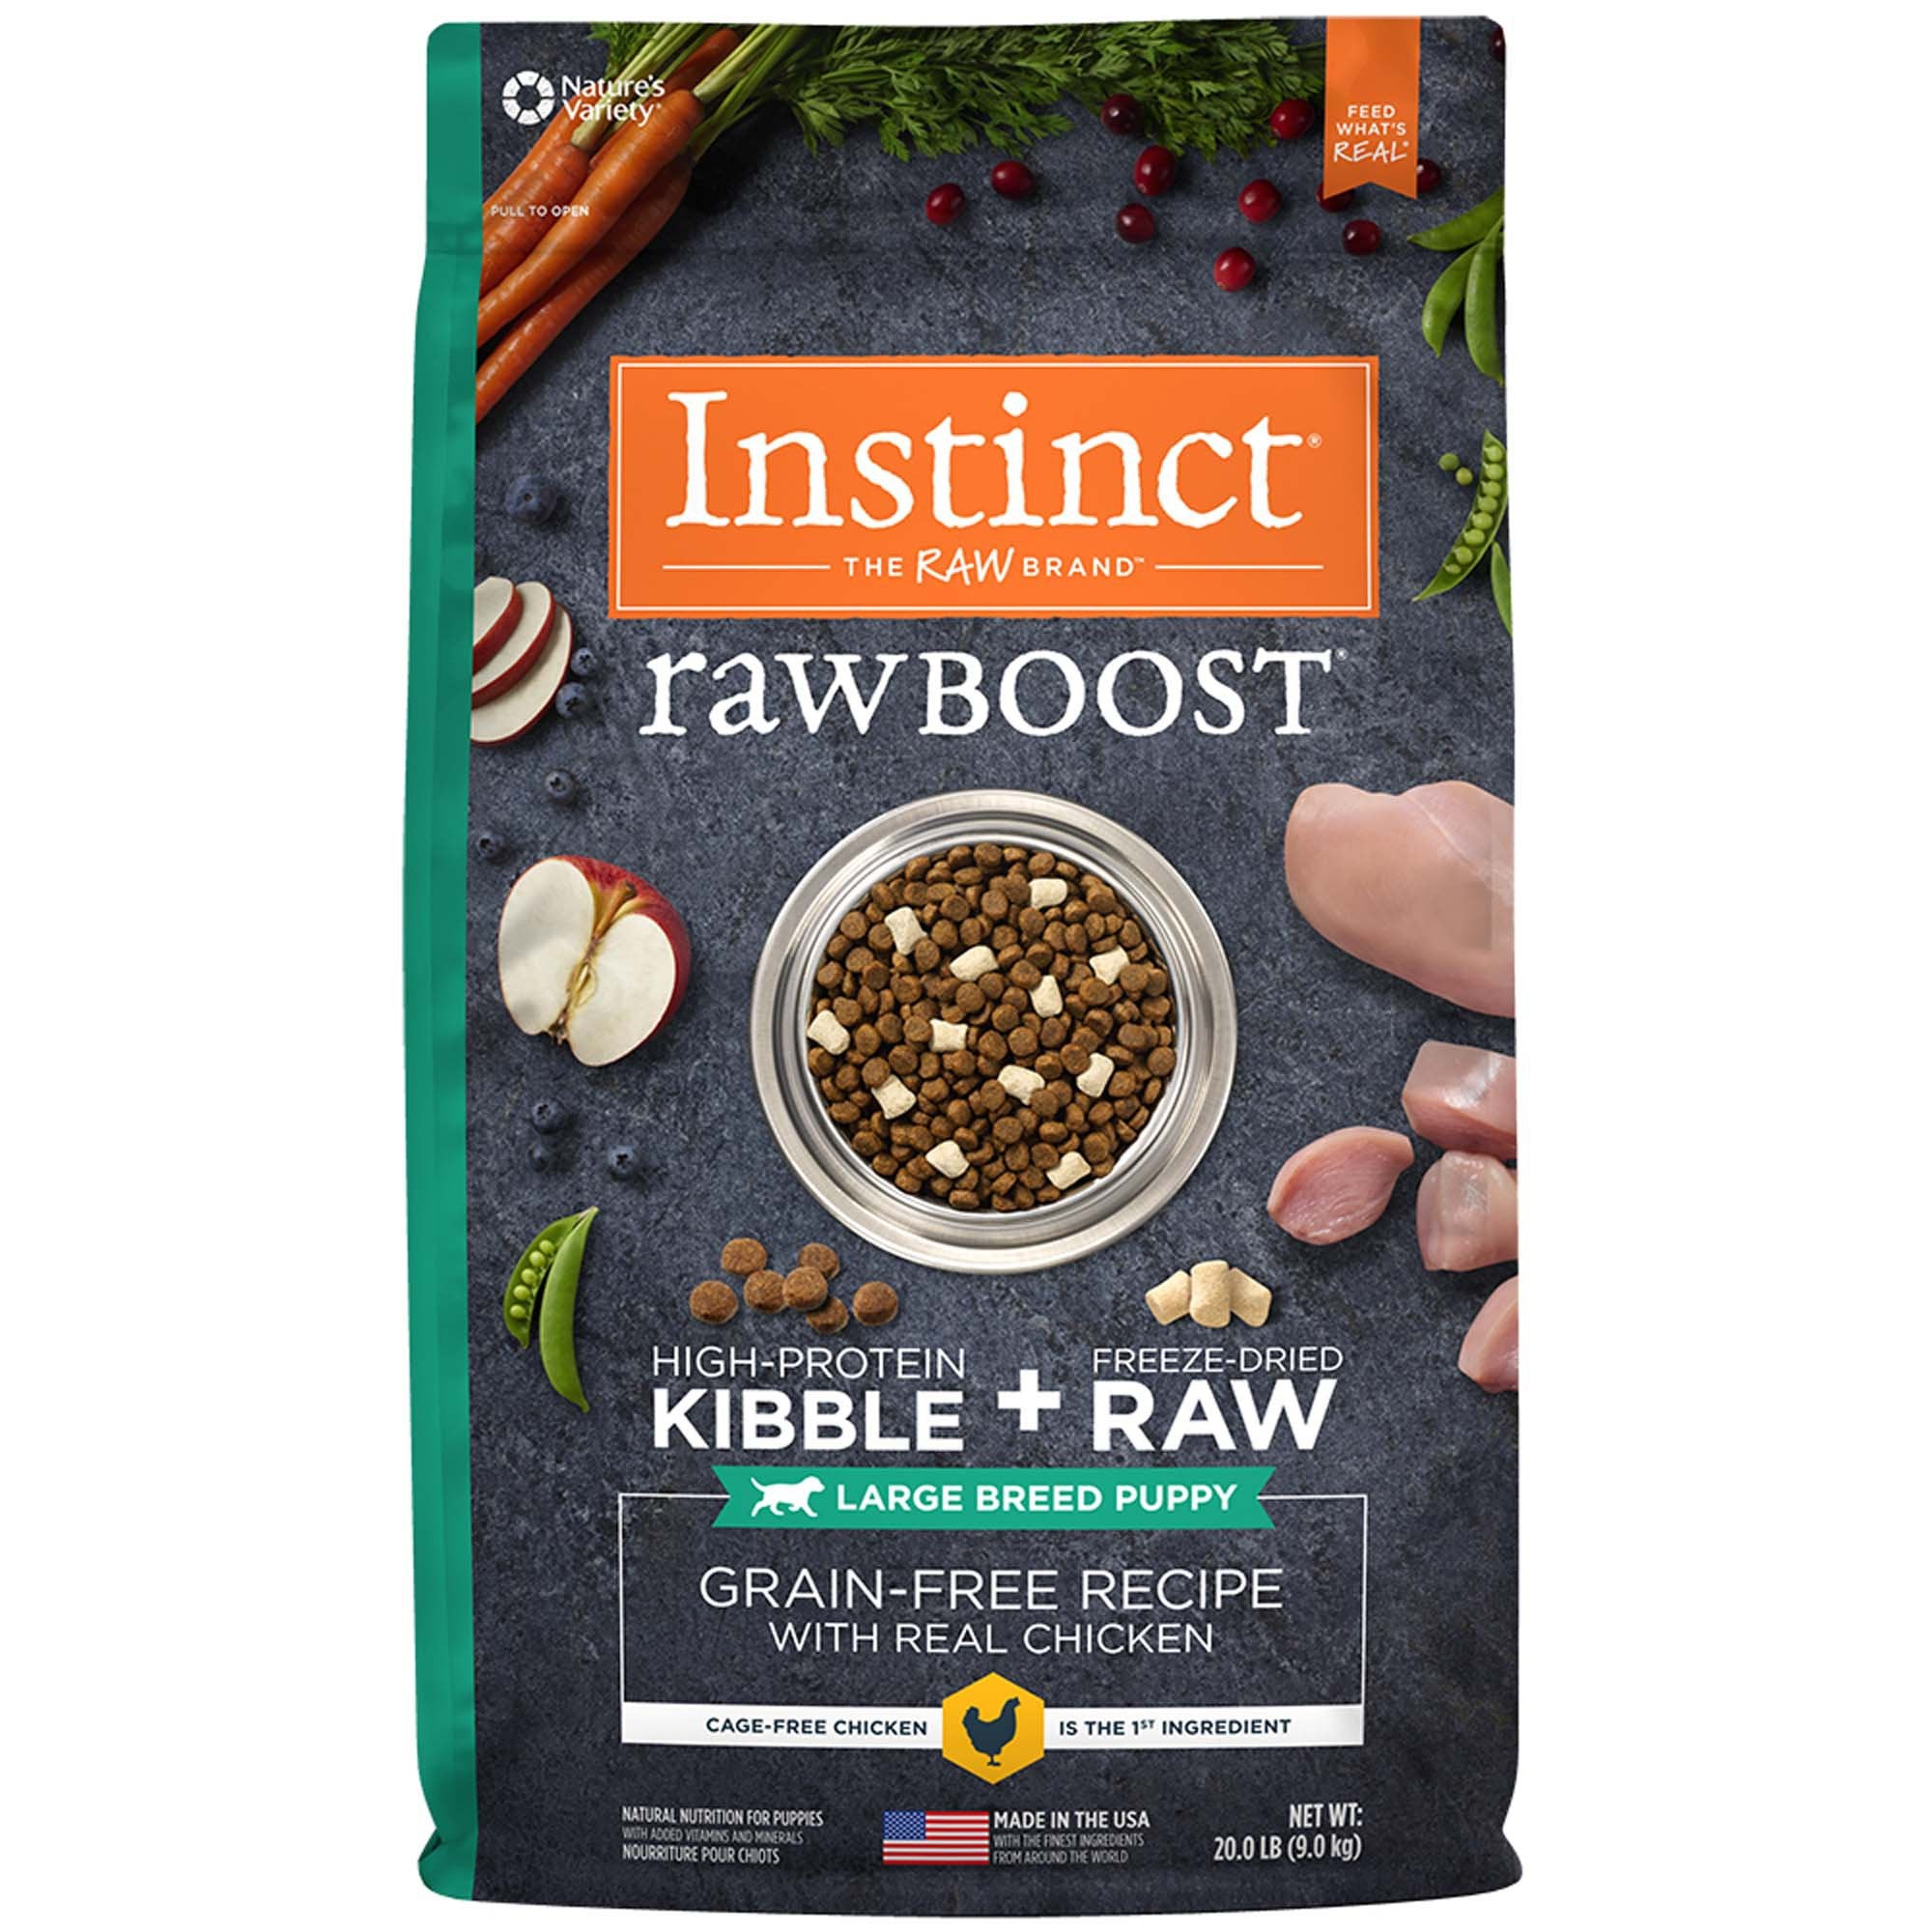 Nature's Variety Instinct Raw Boost Large Breed Puppy Chicken Dry Dog Food at NJPetSupply.com